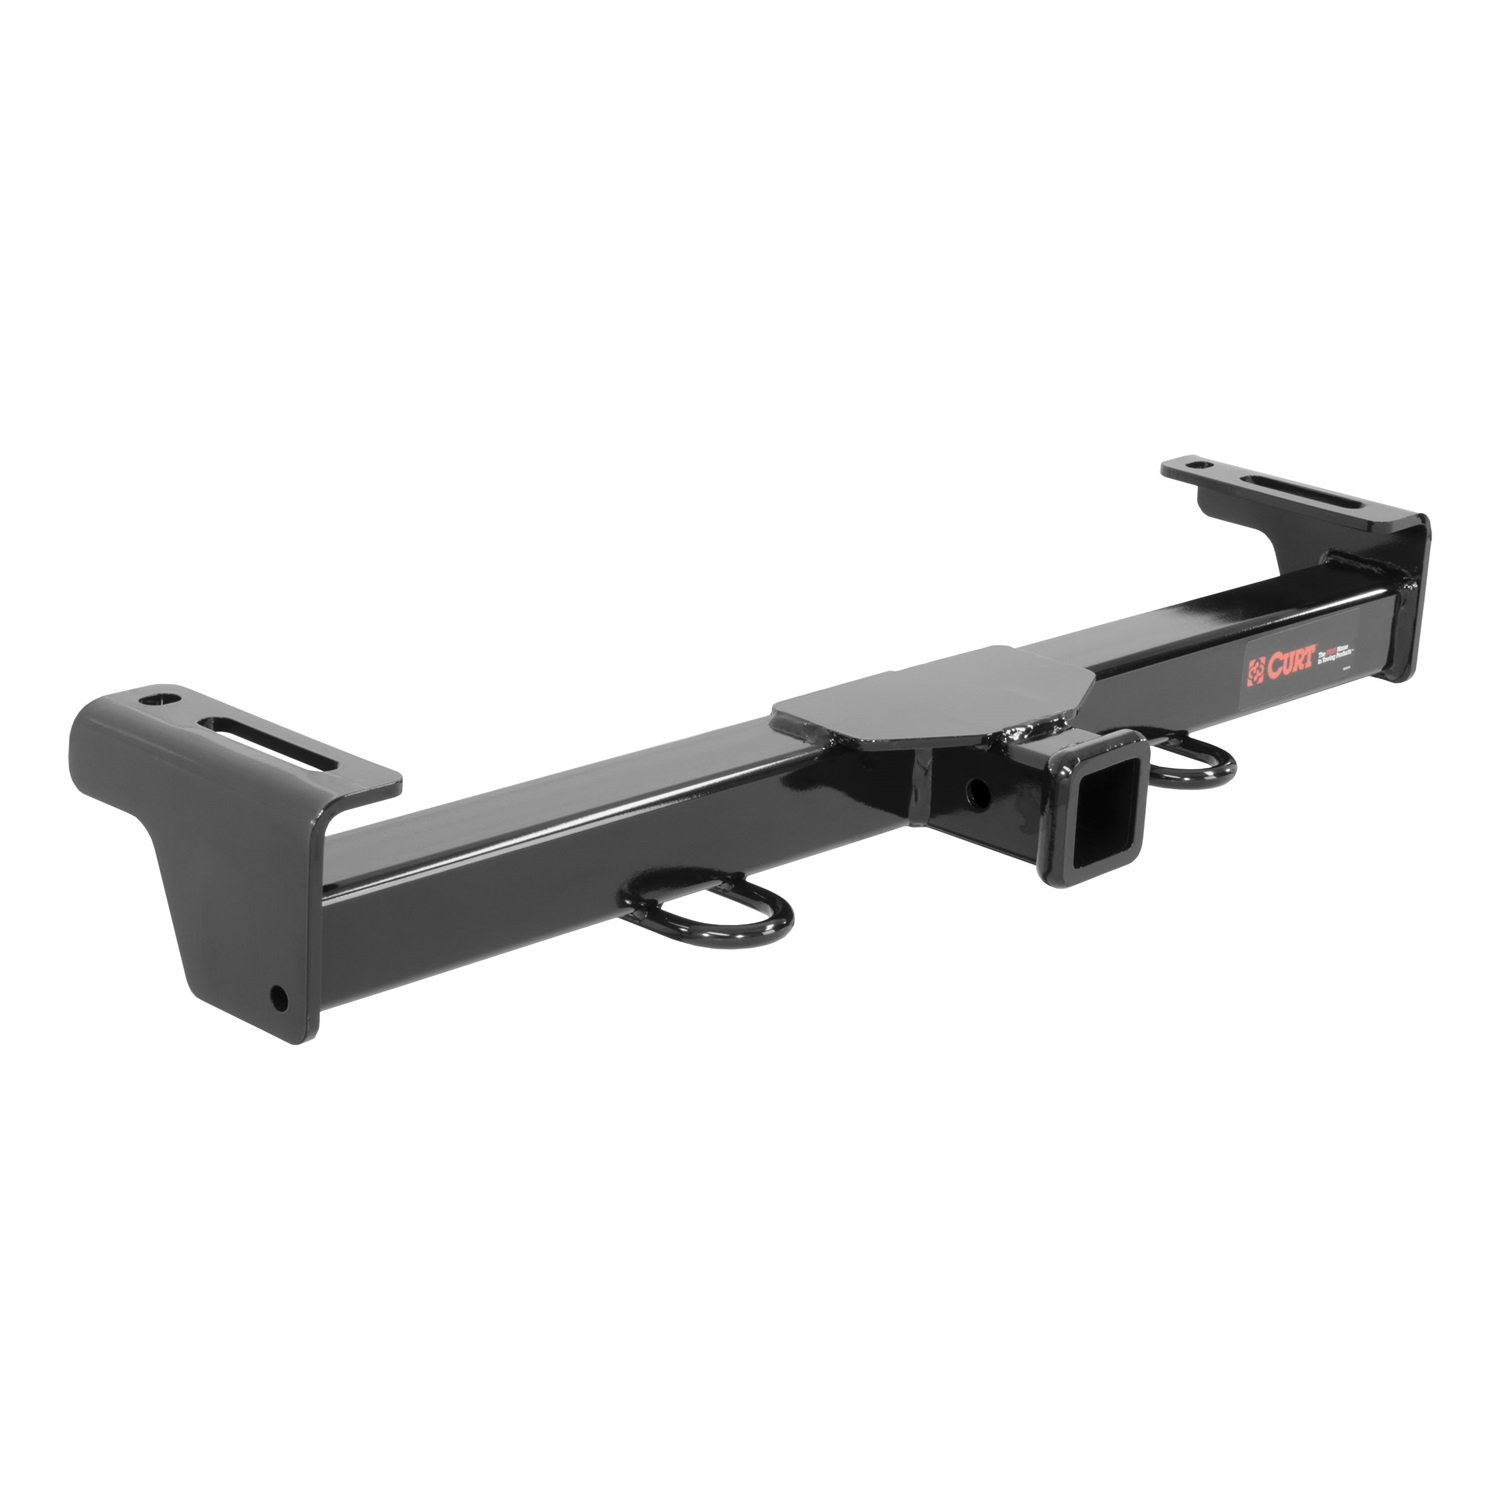 CURT 31077 Front Hitch with 2-Inch Receiver, Fits Select Nissan Titan XD